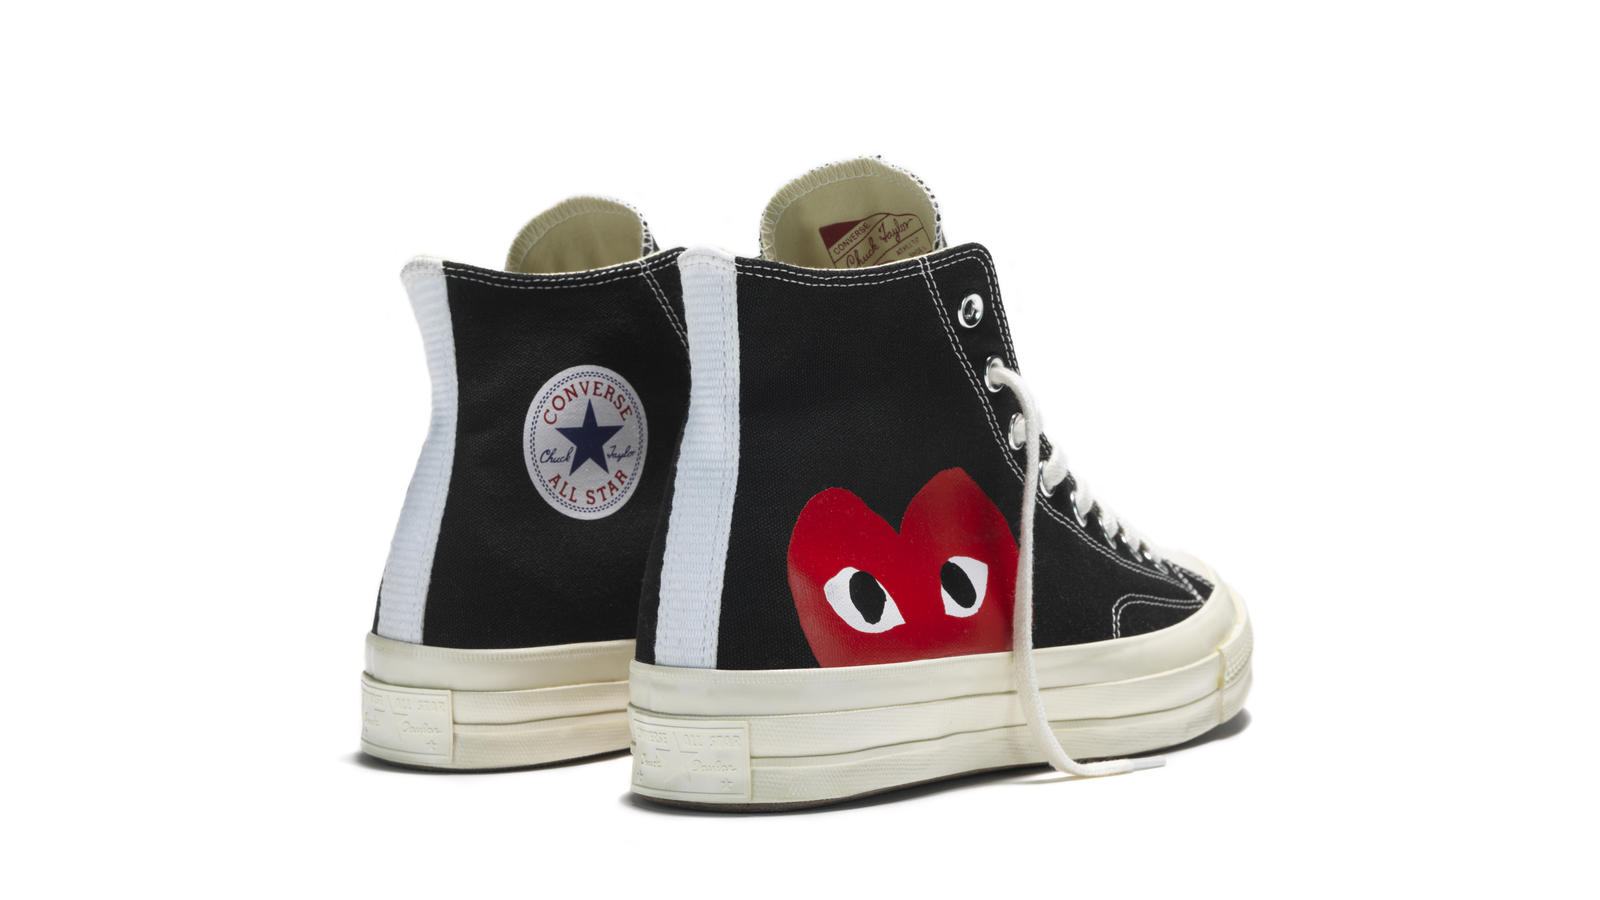 CONVERSE AND COMME DES GARCONS ANNOUNCE NEW PLAY ...